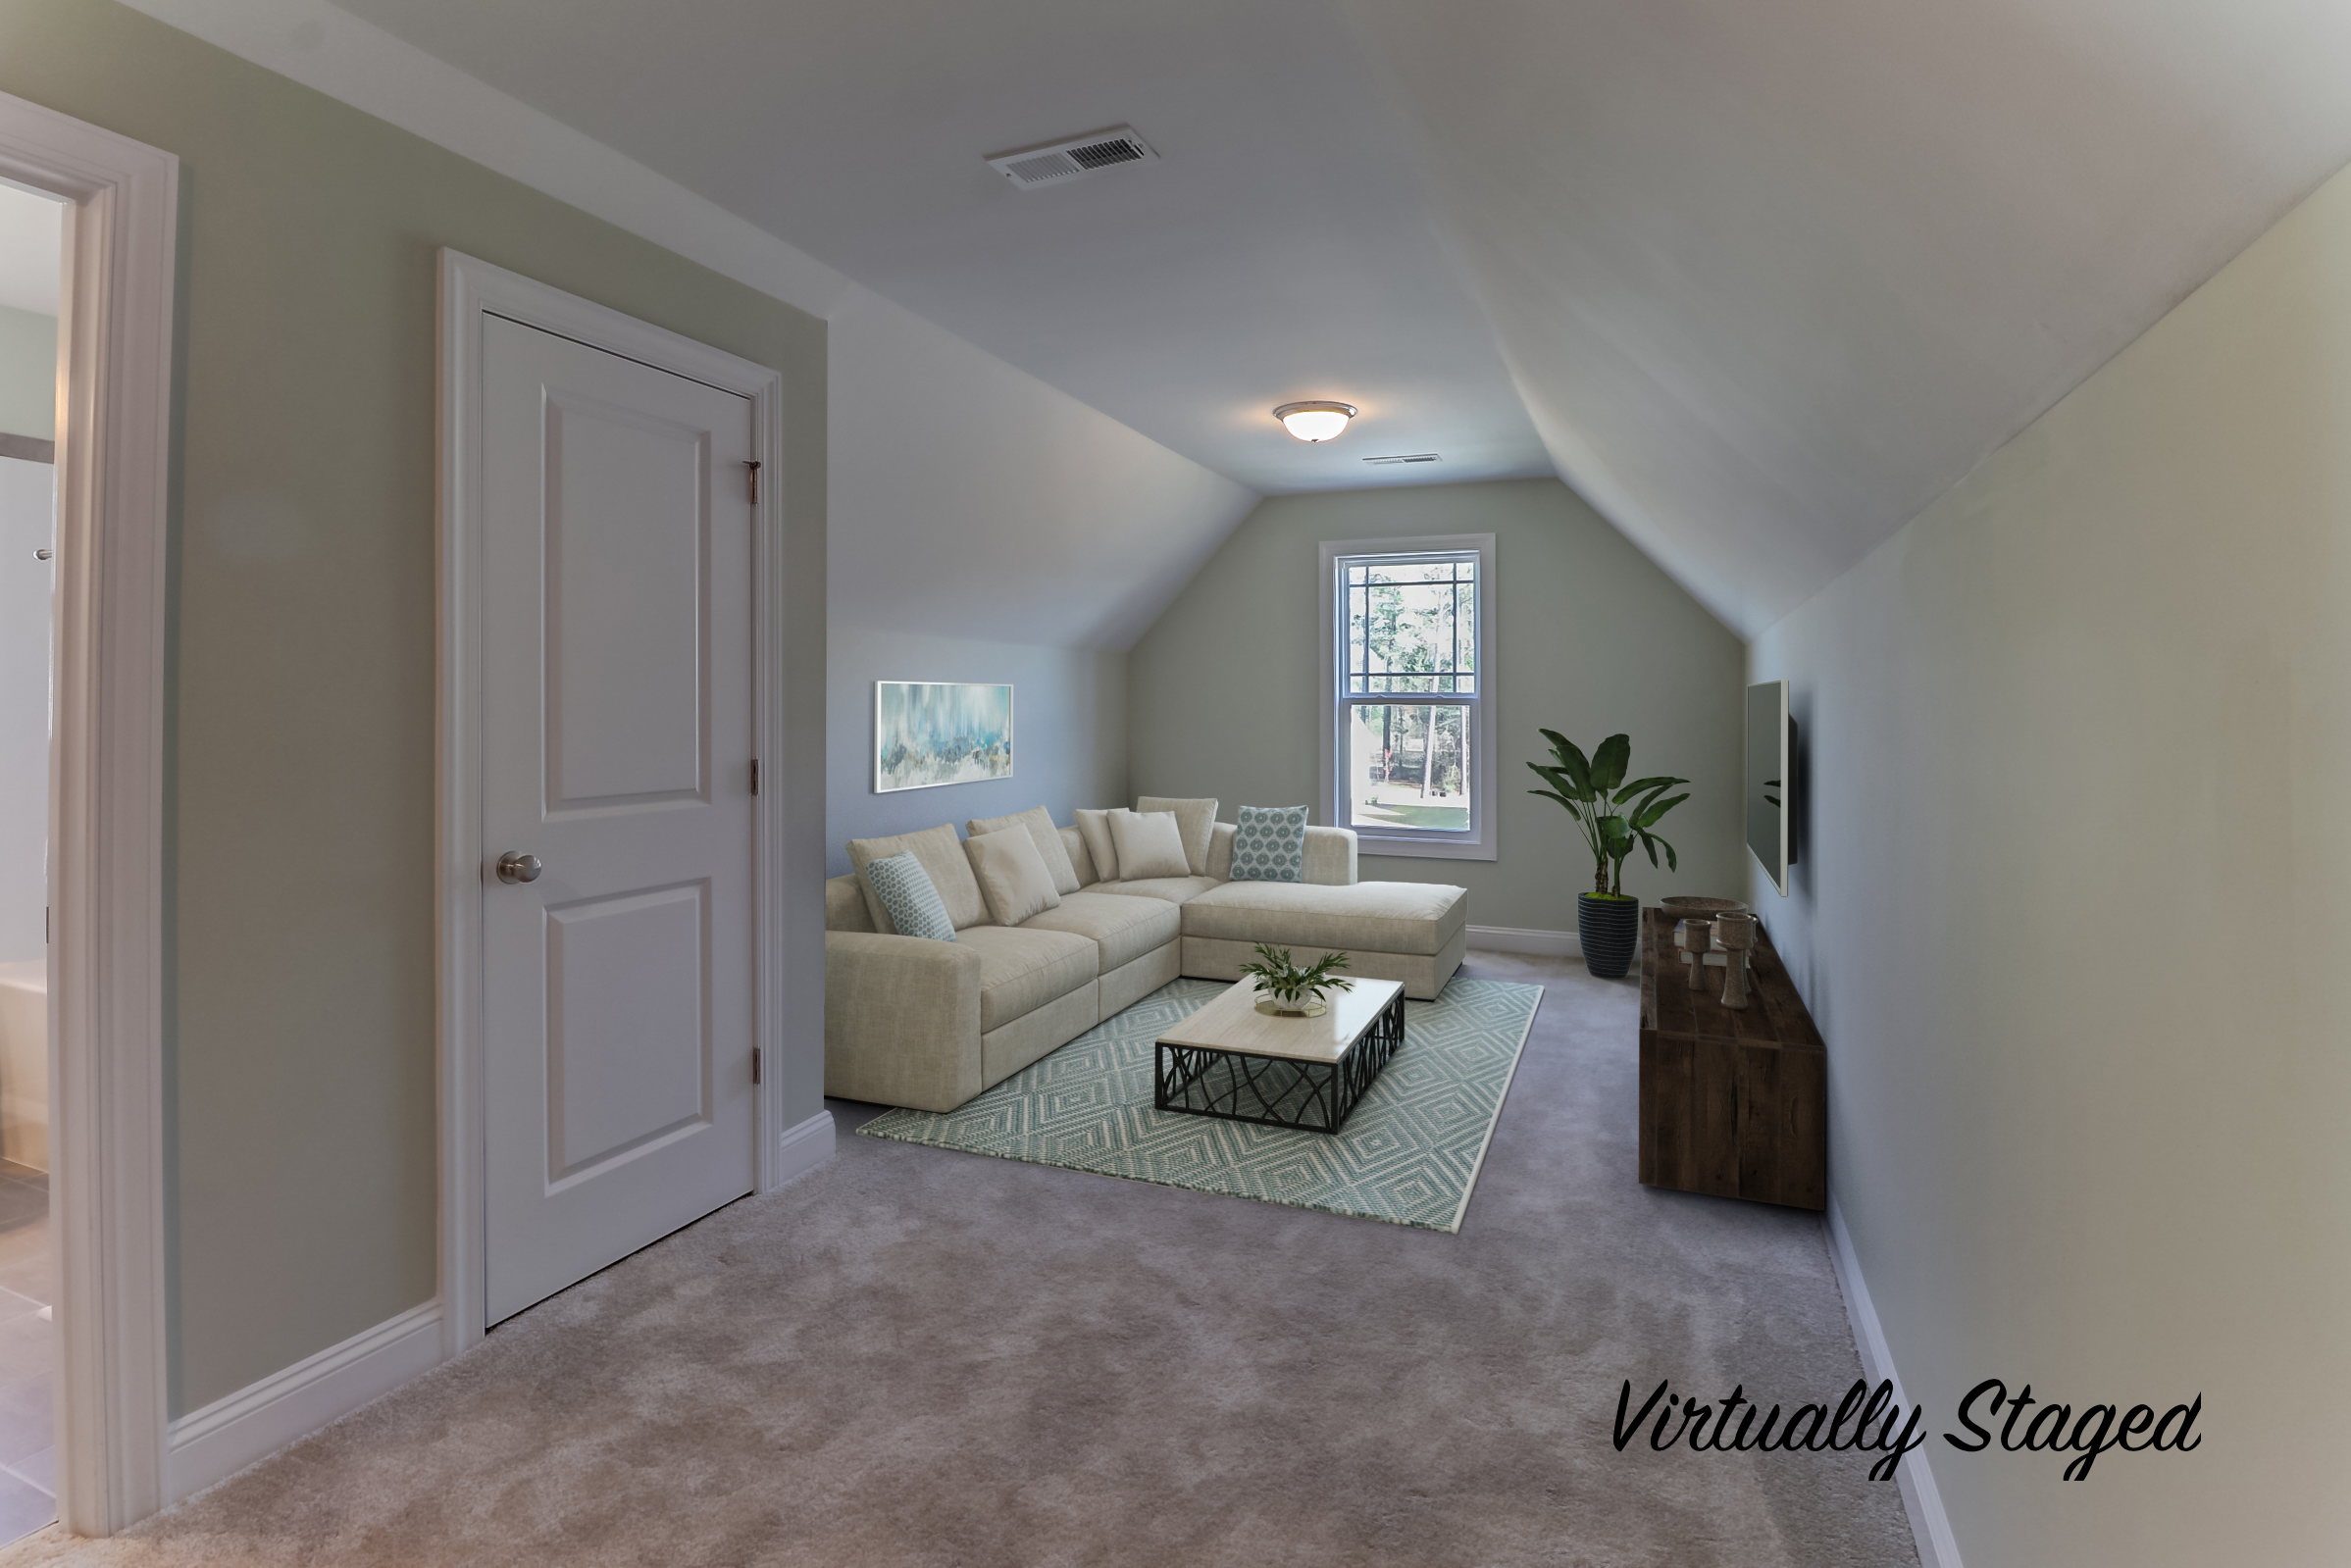 3723 virtually staged bonus room.jpg